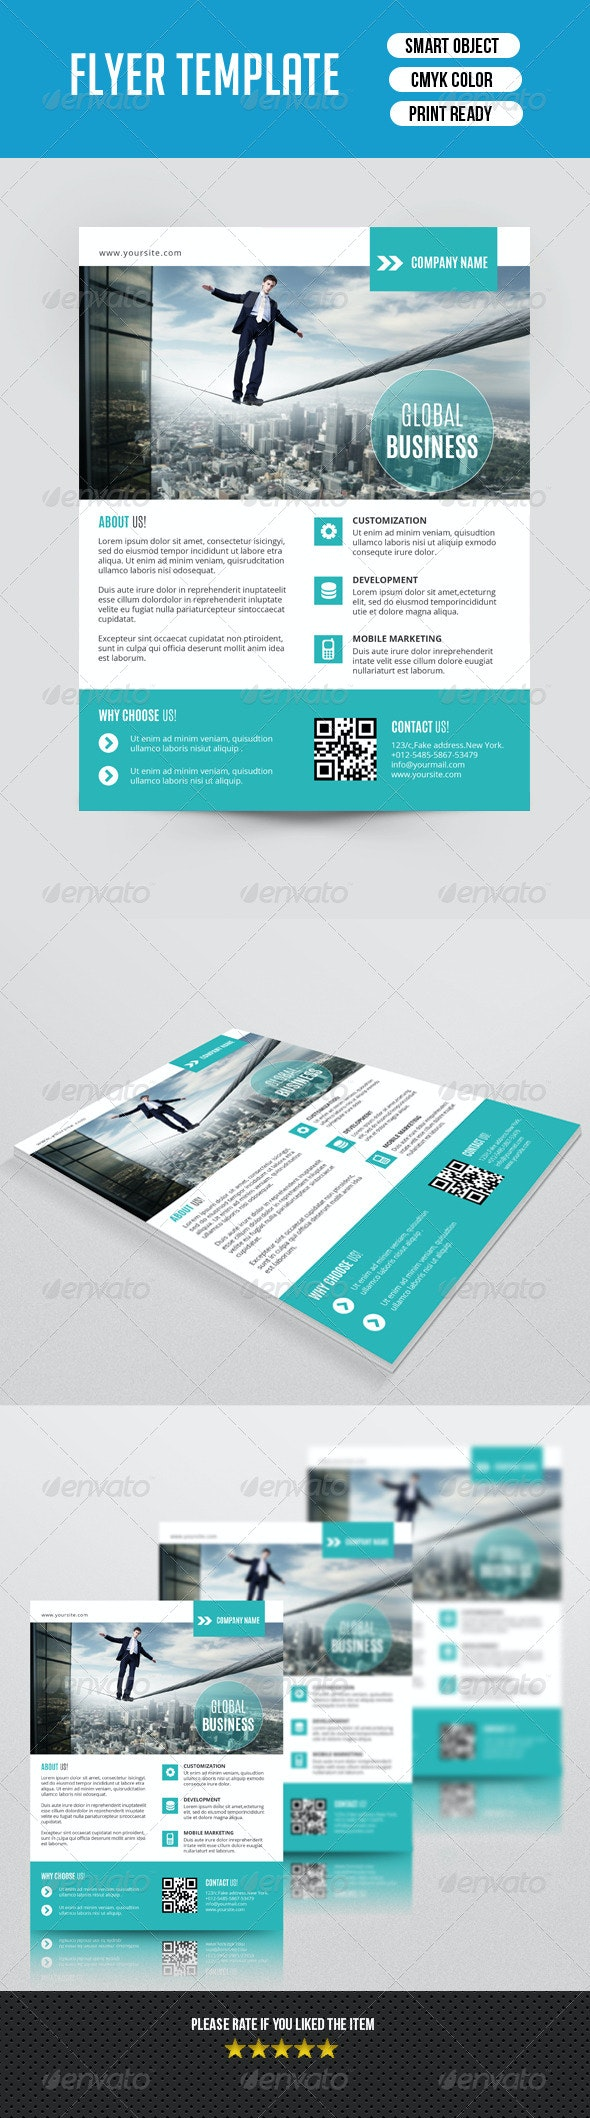 Corporate Flyer Template-V91 - Corporate Flyers